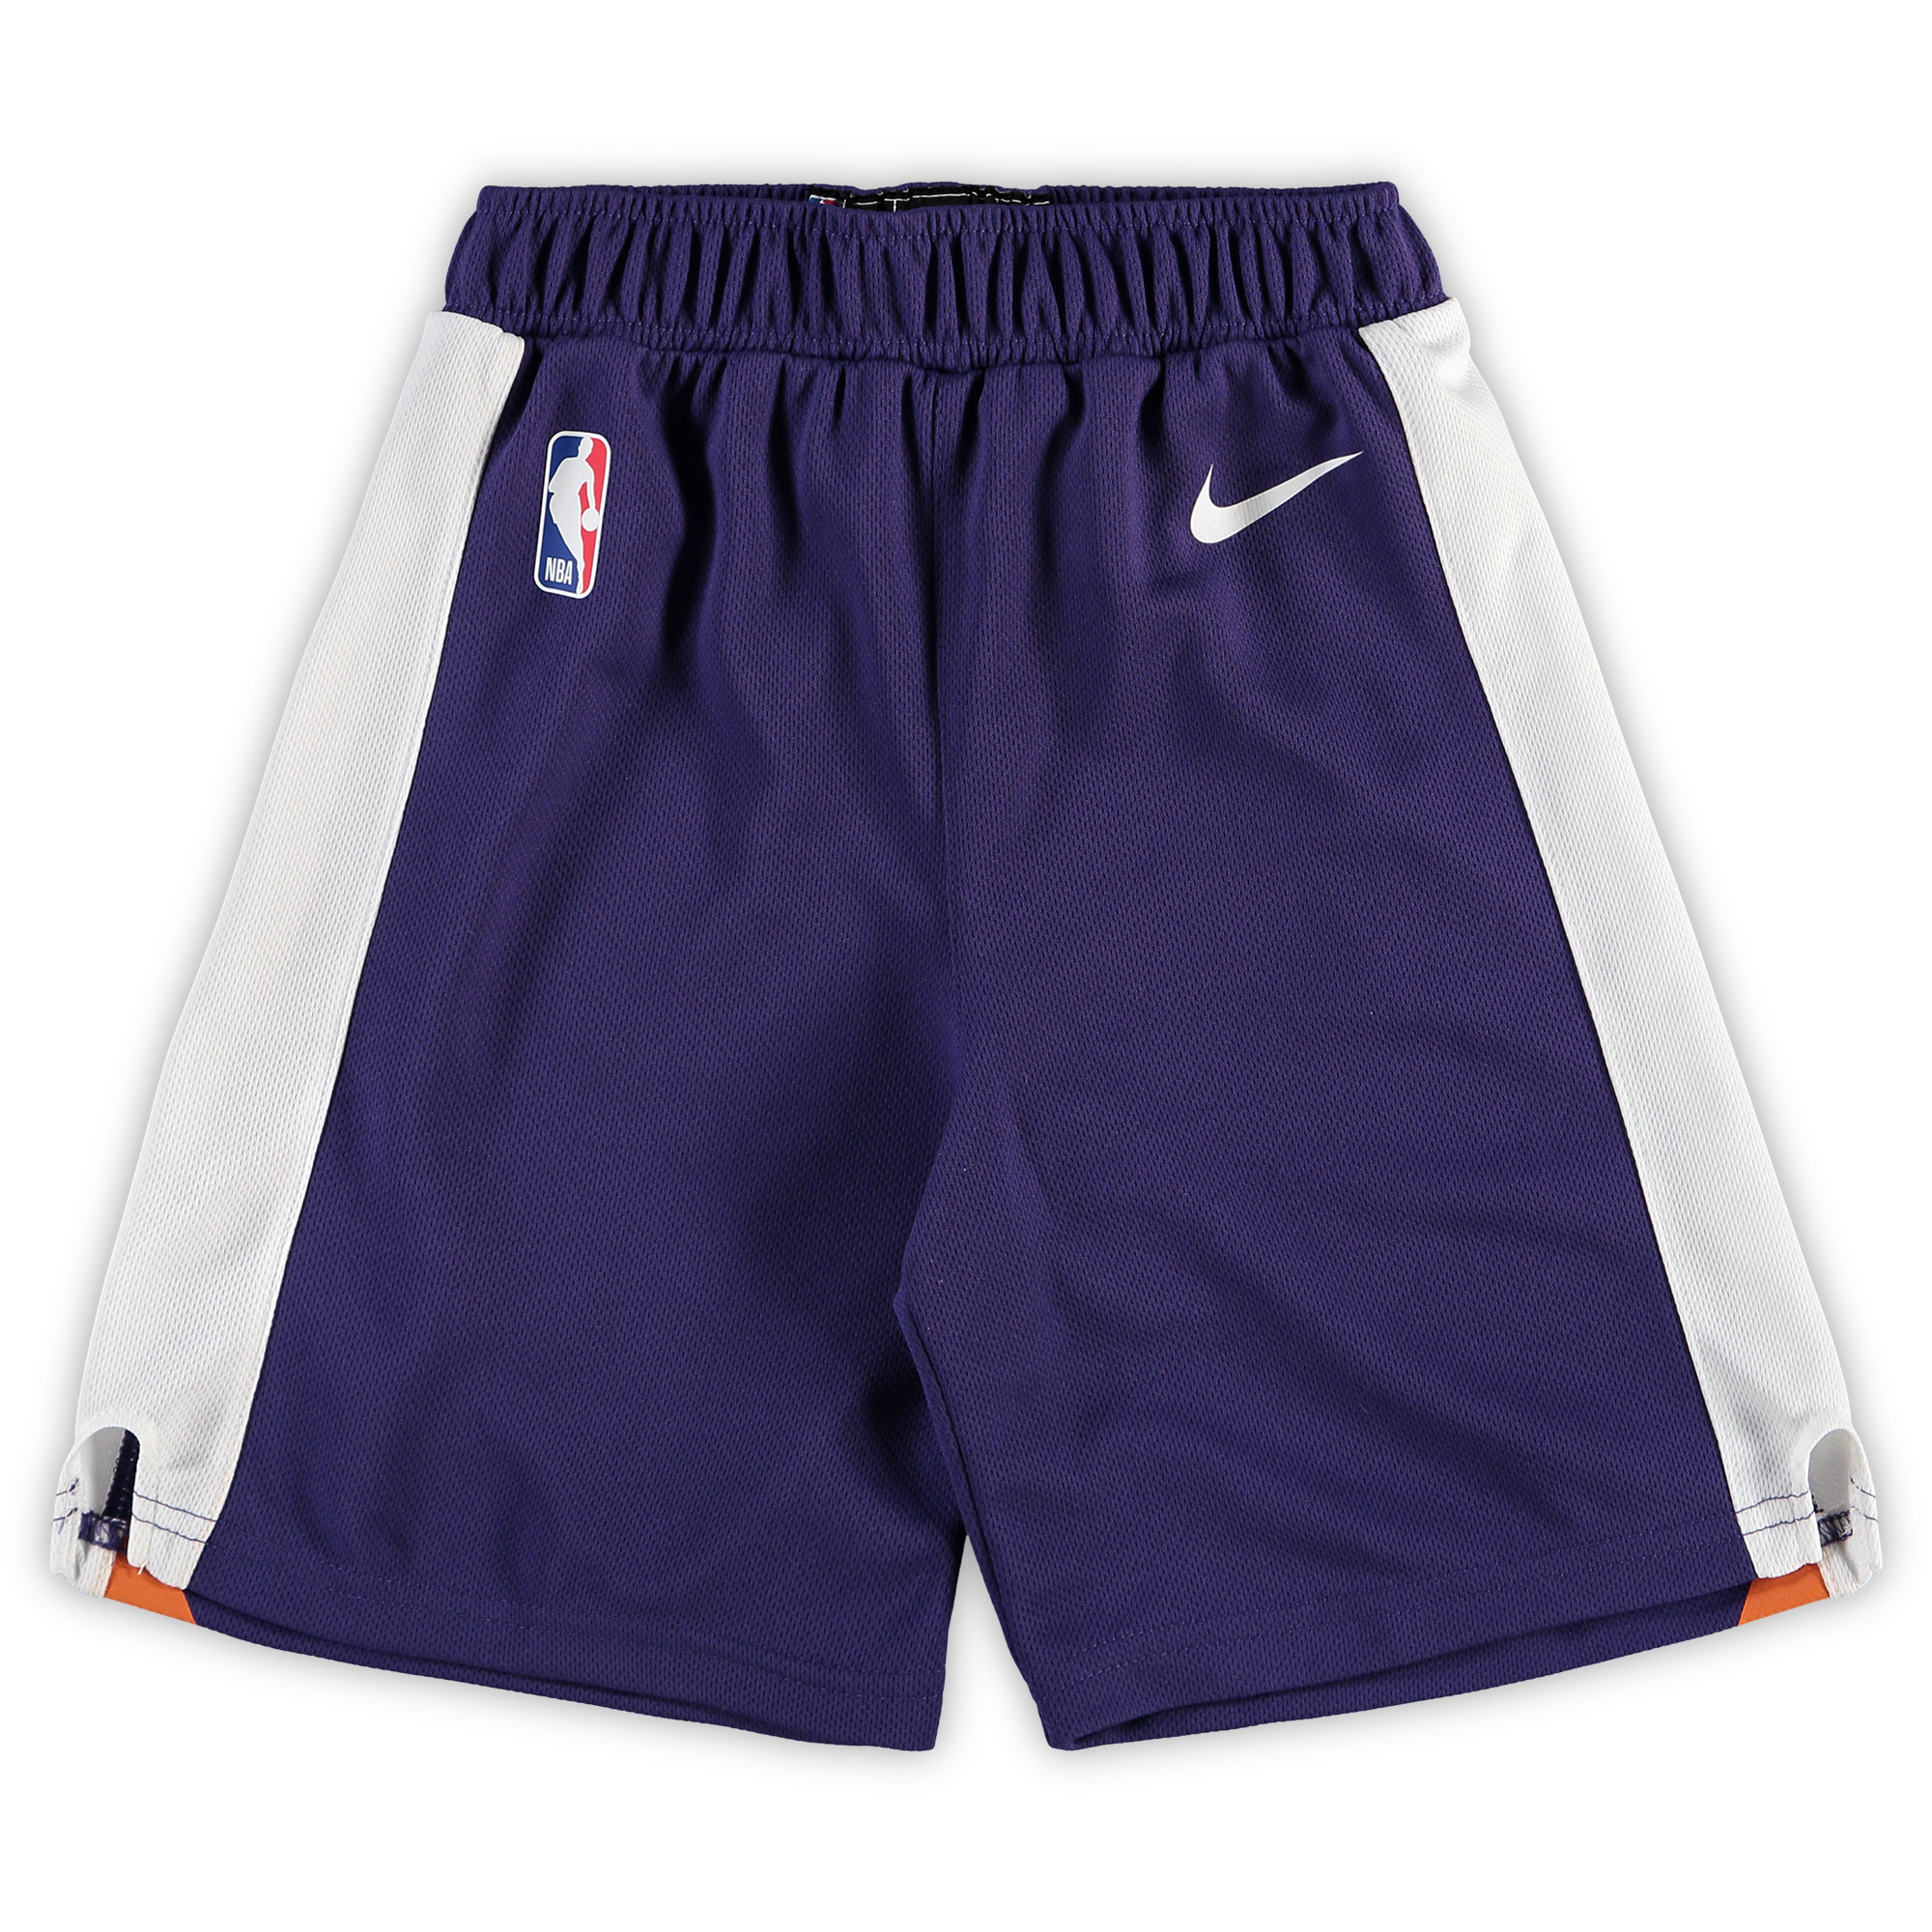 Phoenix Suns Nike Preschool Icon Replica Team Shorts - Purple